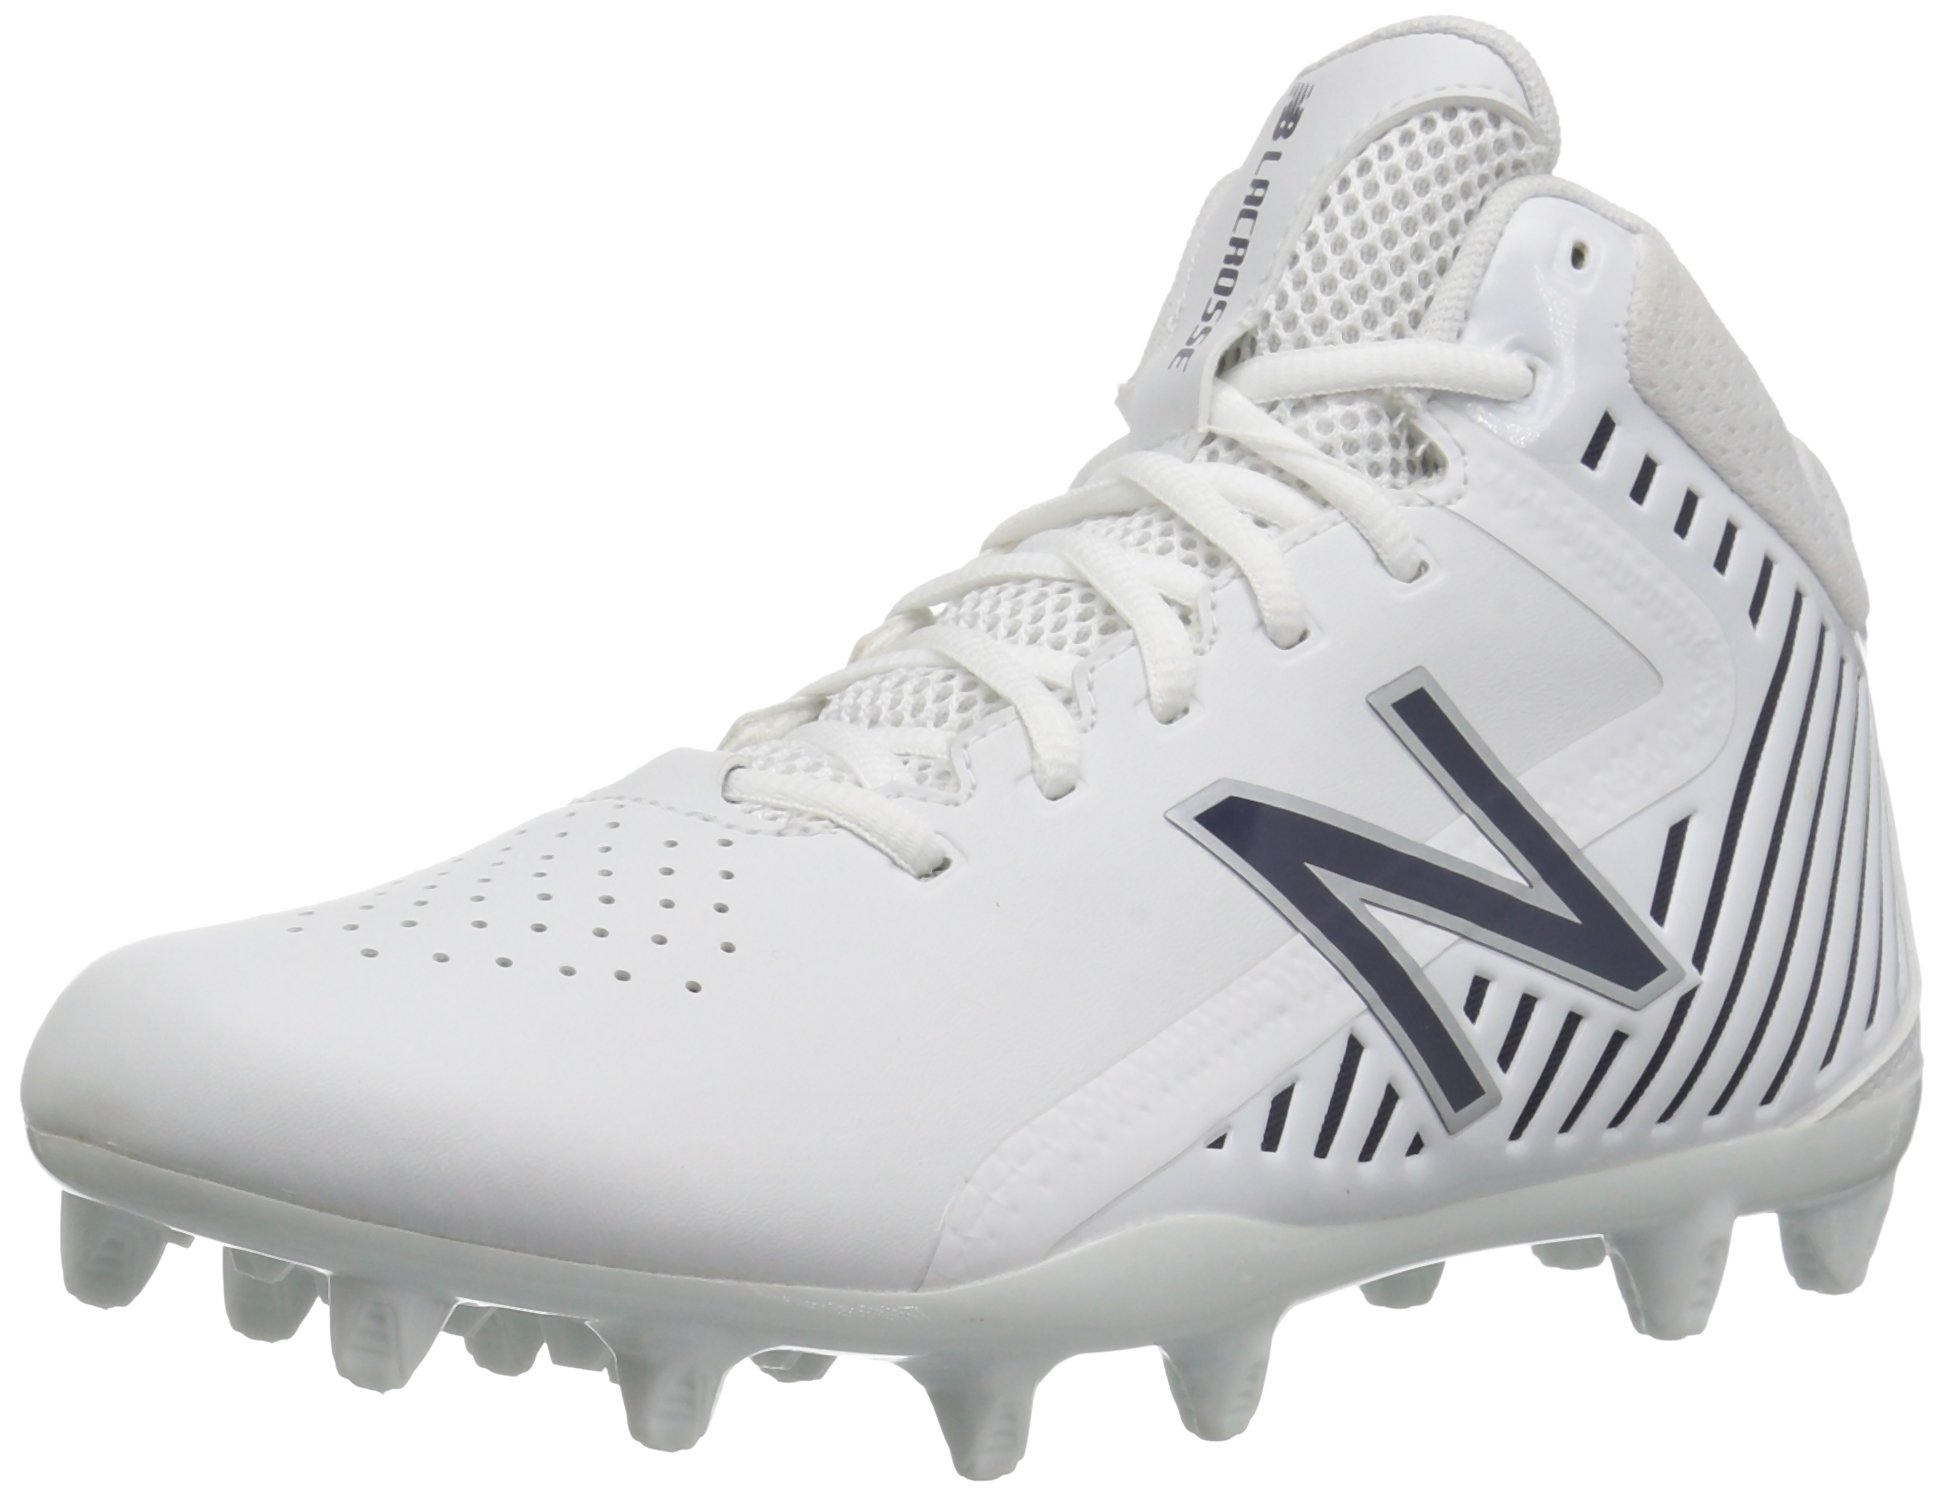 New Balance Men's Rush v1 Lacrosse Speed Lacrosse Shoe, White/Blue, 13 2E US by New Balance